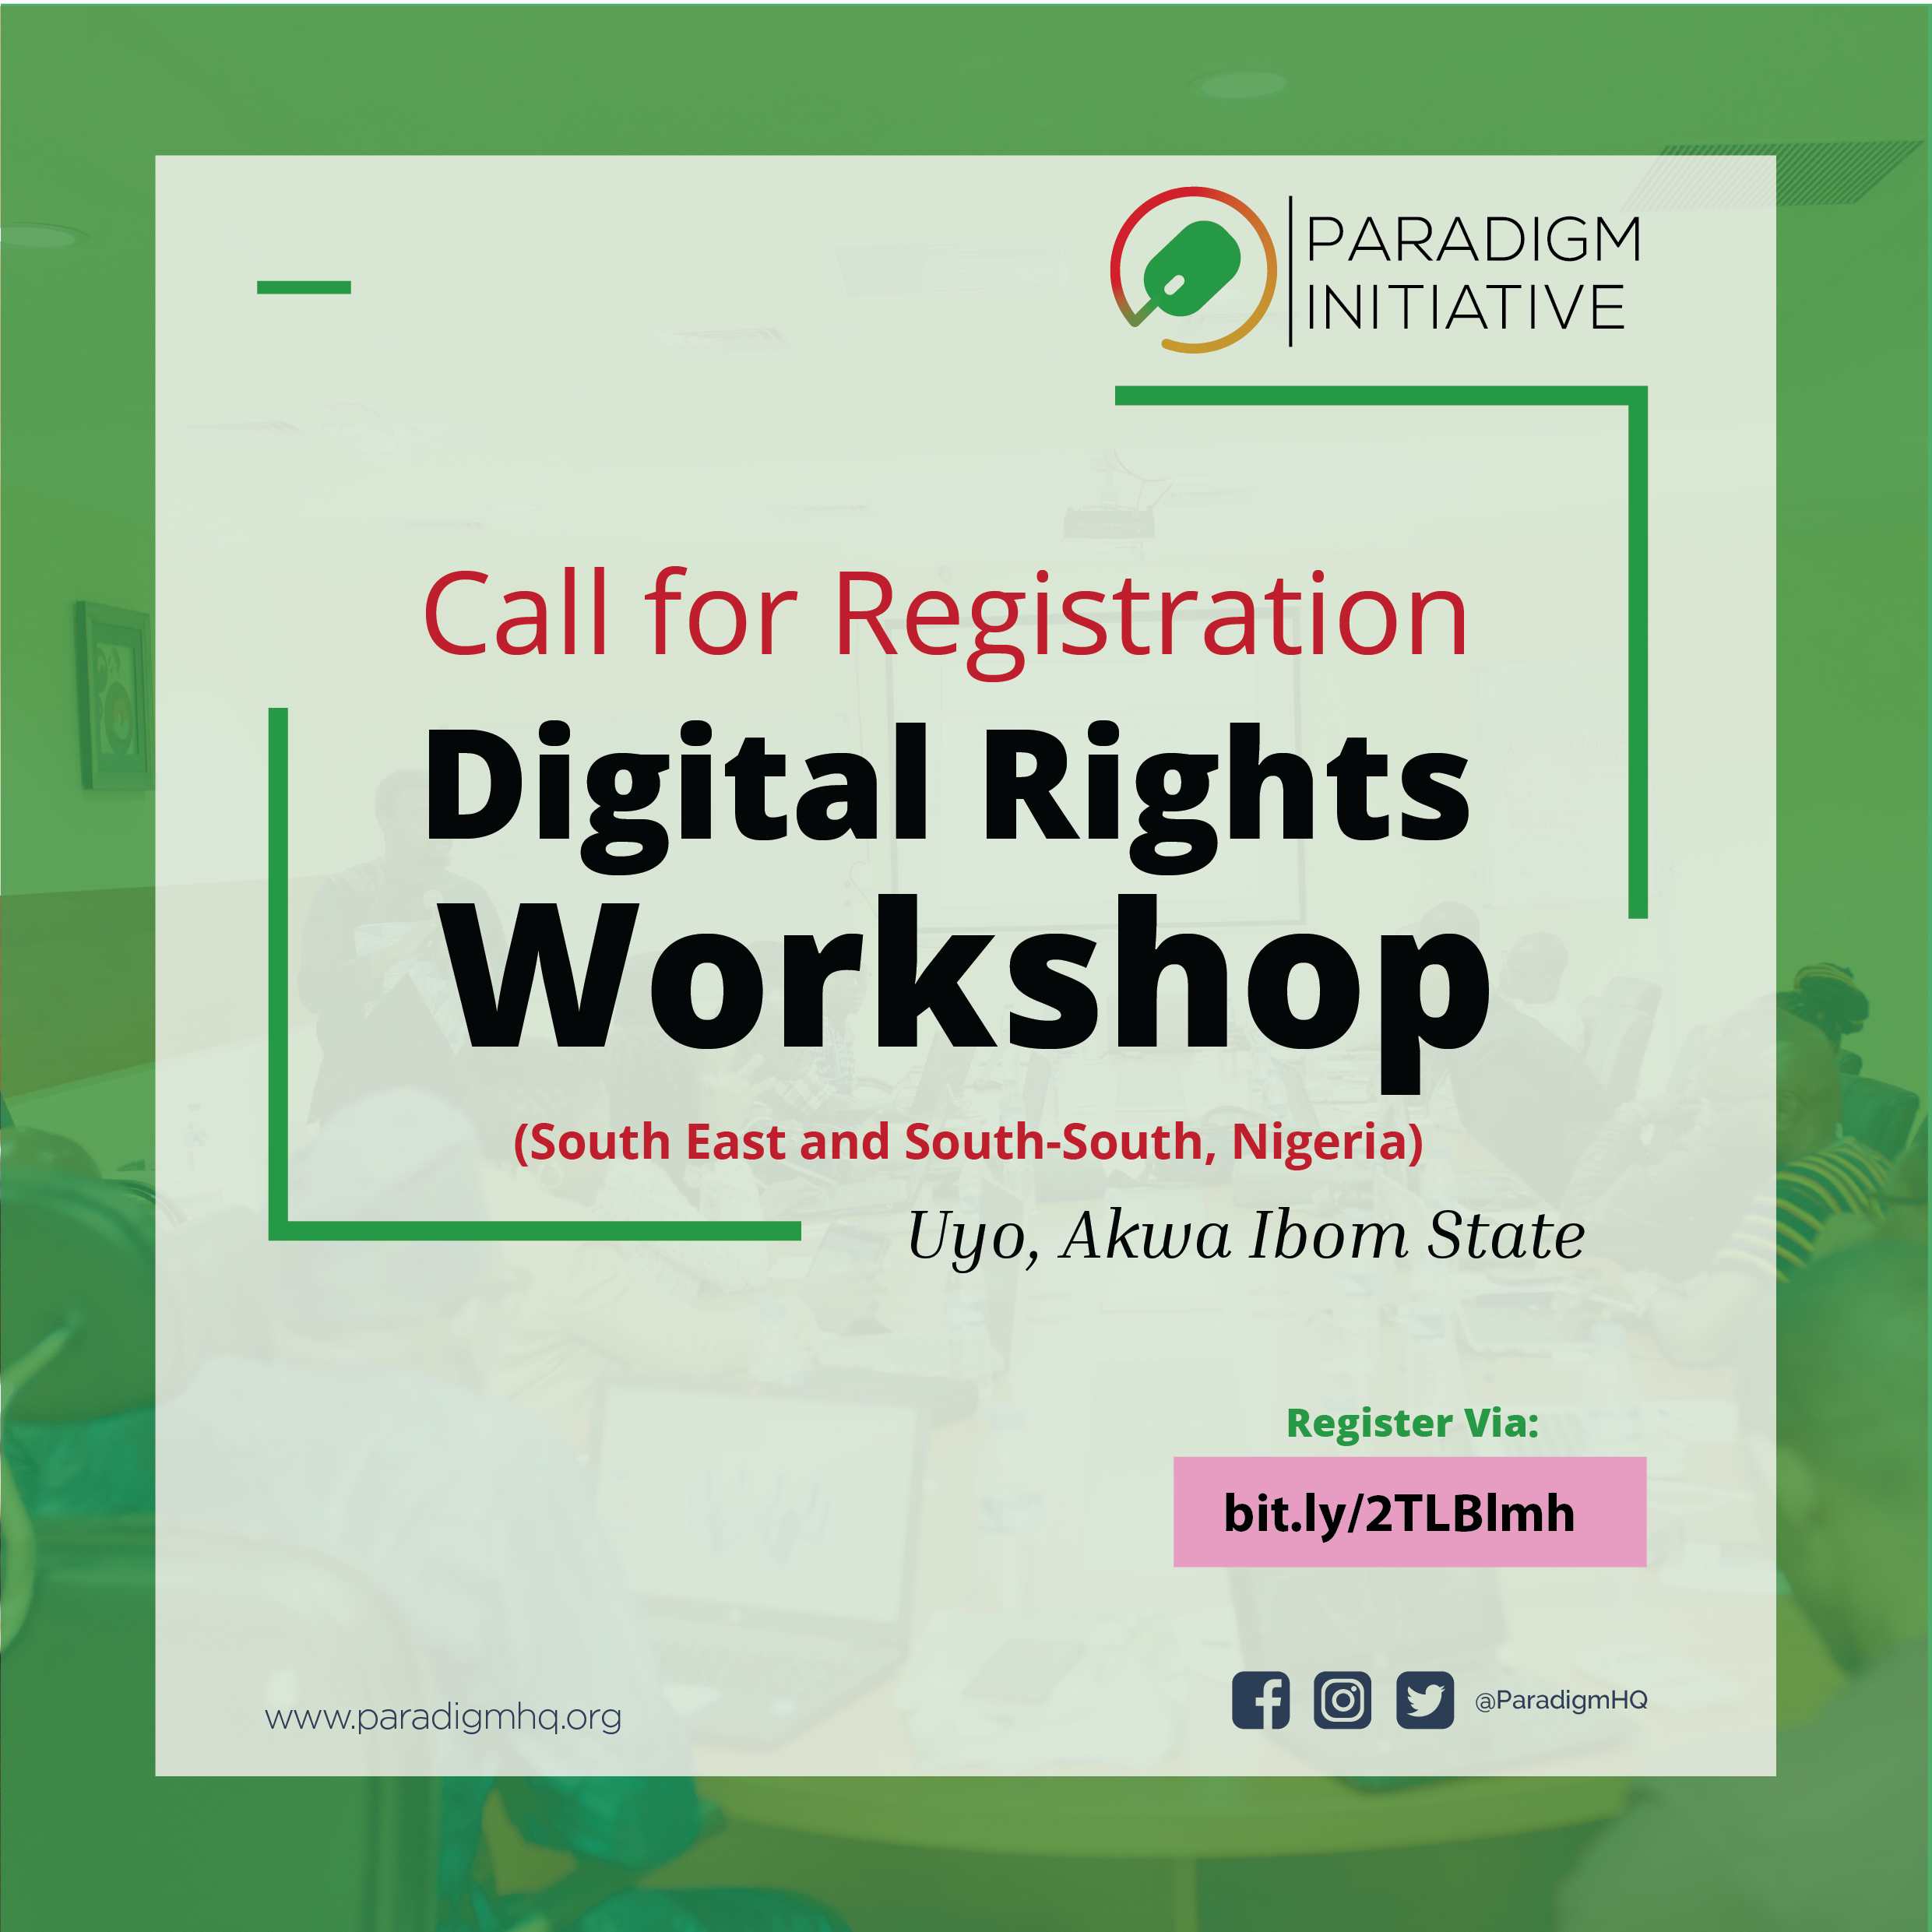 Call for Registration:  Digital rights workshop in Uyo, Akwa Ibom State, Nigeria